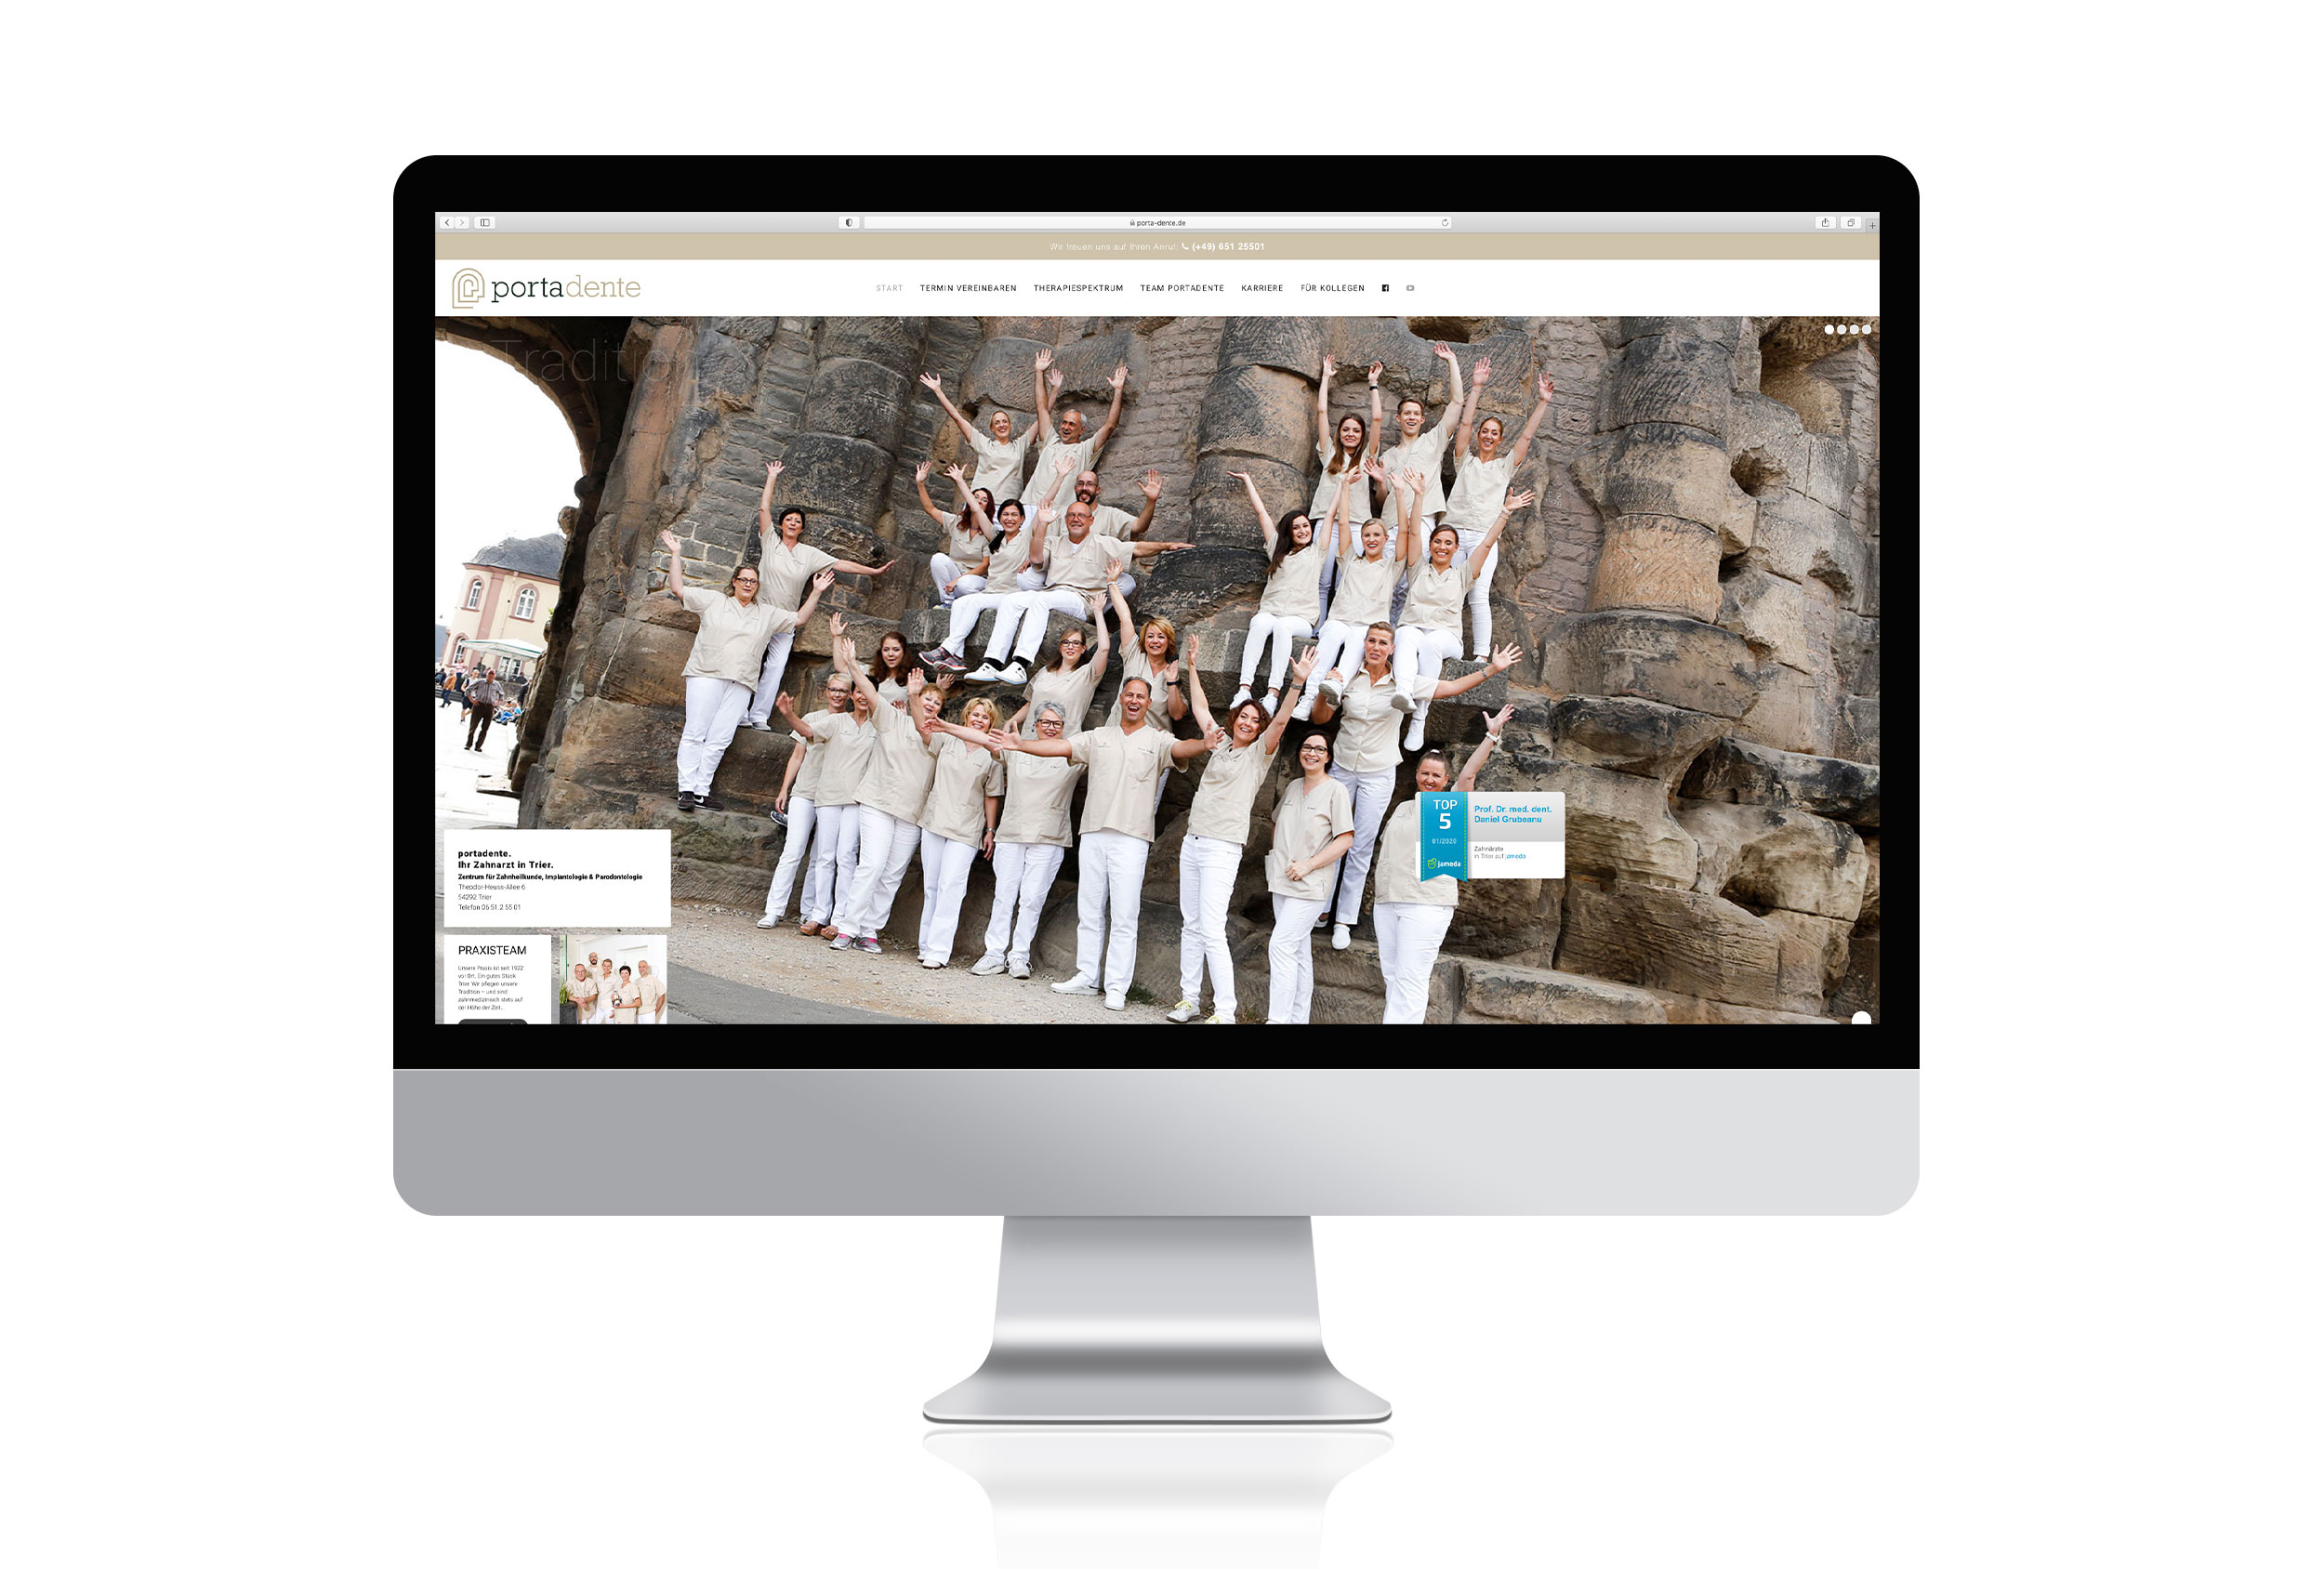 Website Portadente - Praxisteam vor der Porta Nigra